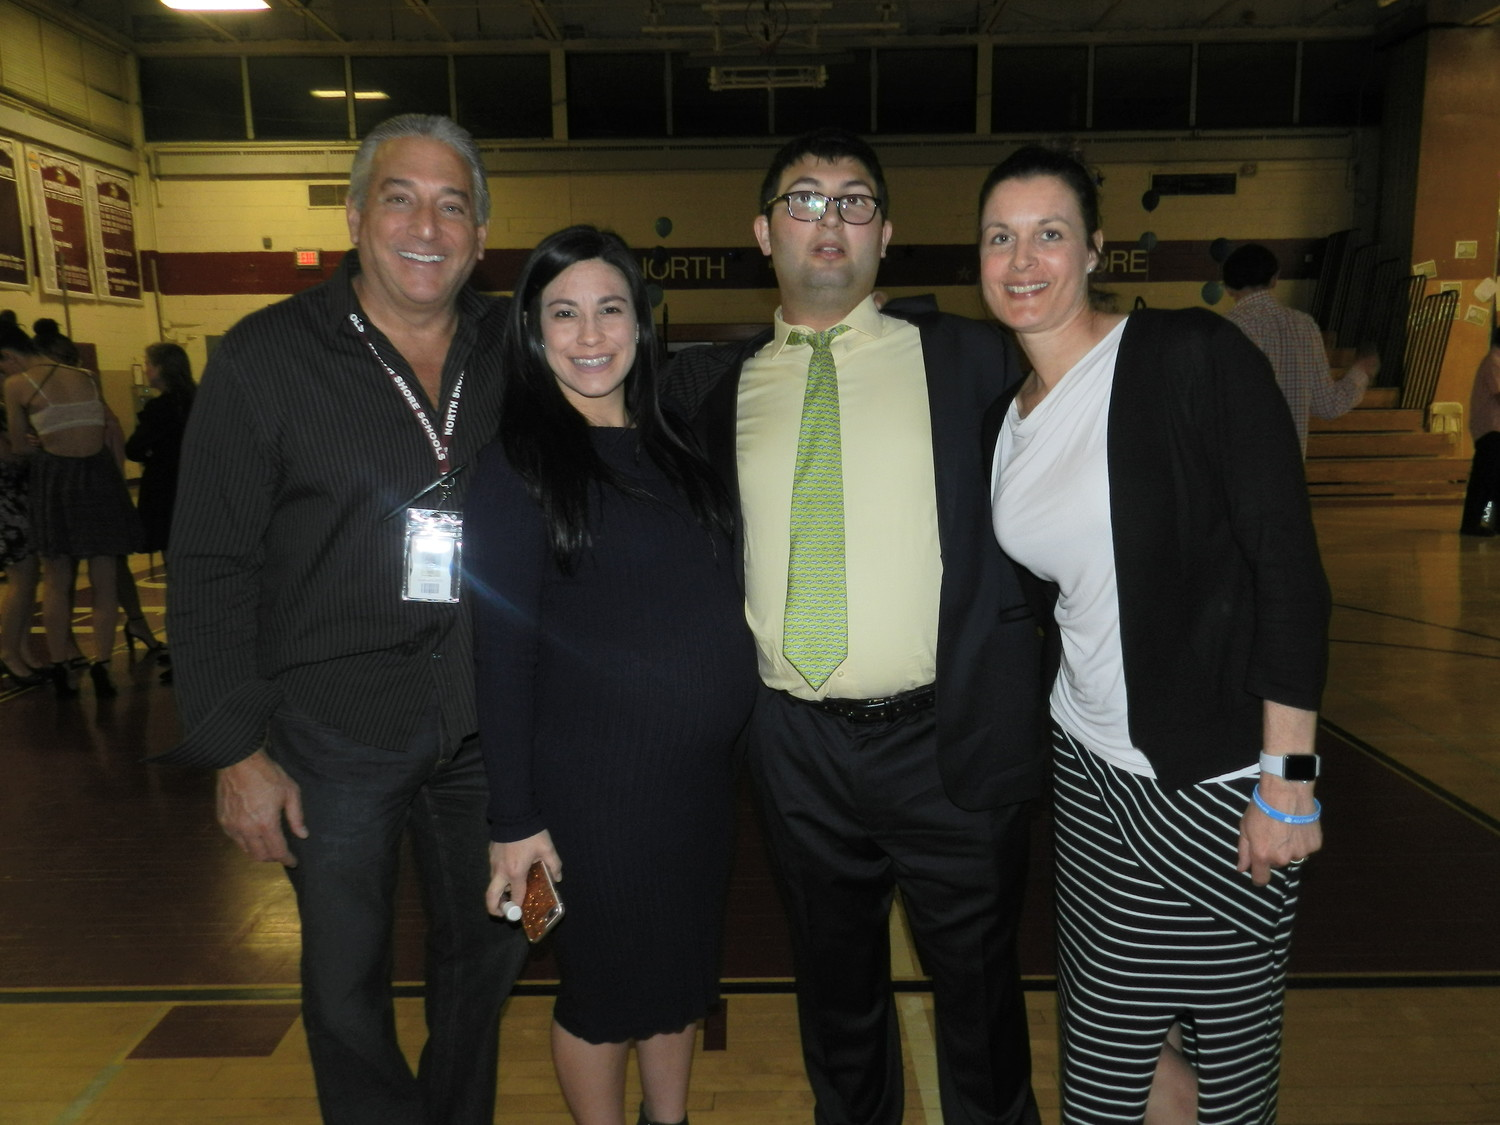 Life Skills aides John Vigliotti, Nicole Langone and Lisa Johanson were happy Sam Goldman, who will graduate from North Shore this year, was there to enjoy the dance.